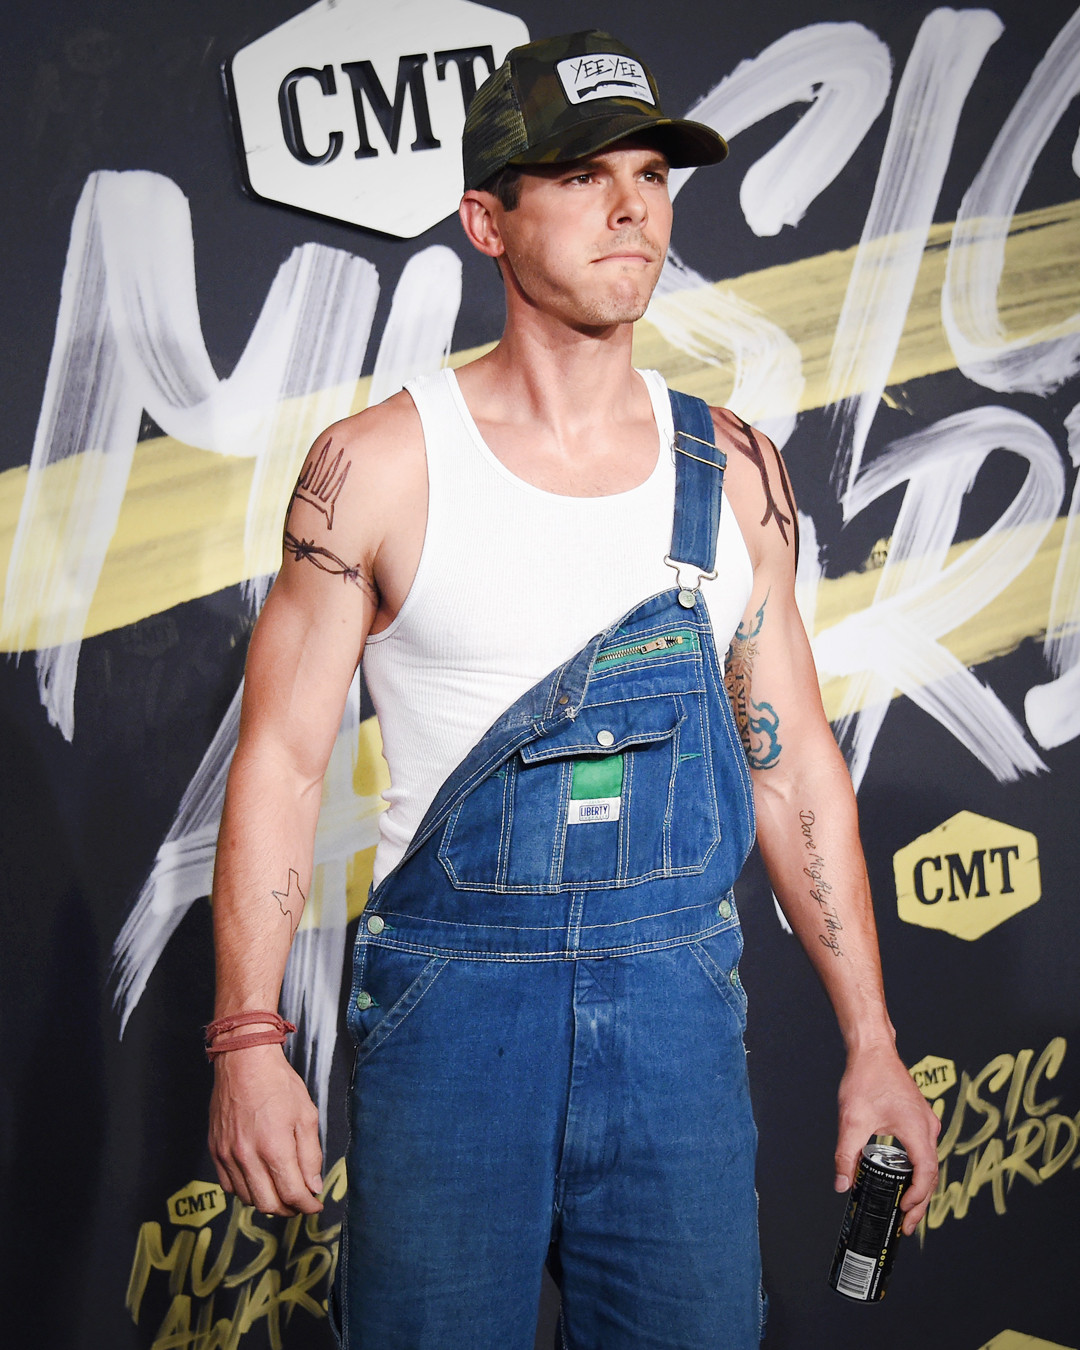 ESC: Earl Dibbles Jr., 2018 CMT Music Awards